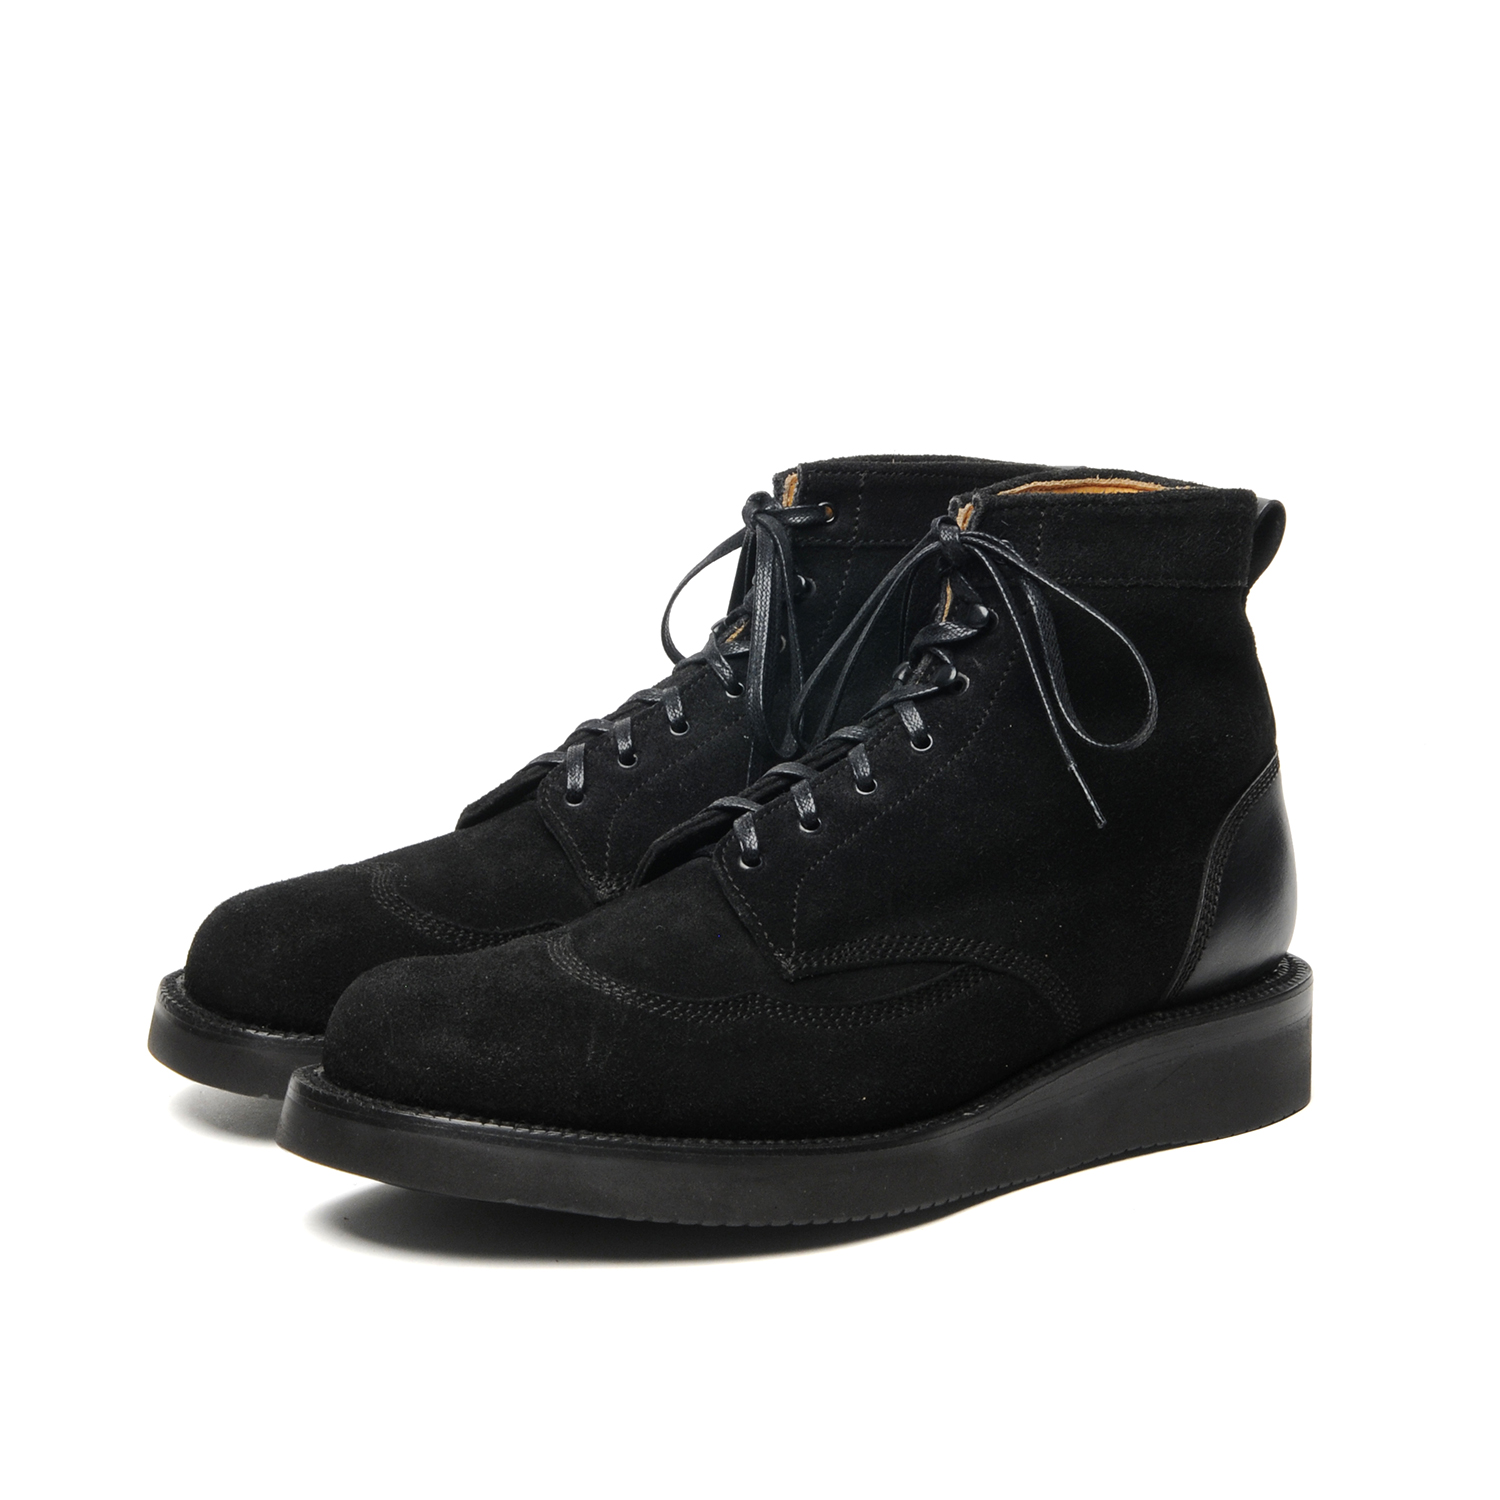 969-1660-30S-WORK-BOOTS-BLACK-SUEDE-X-BLACK-SILLERO-ANGLE.jpg